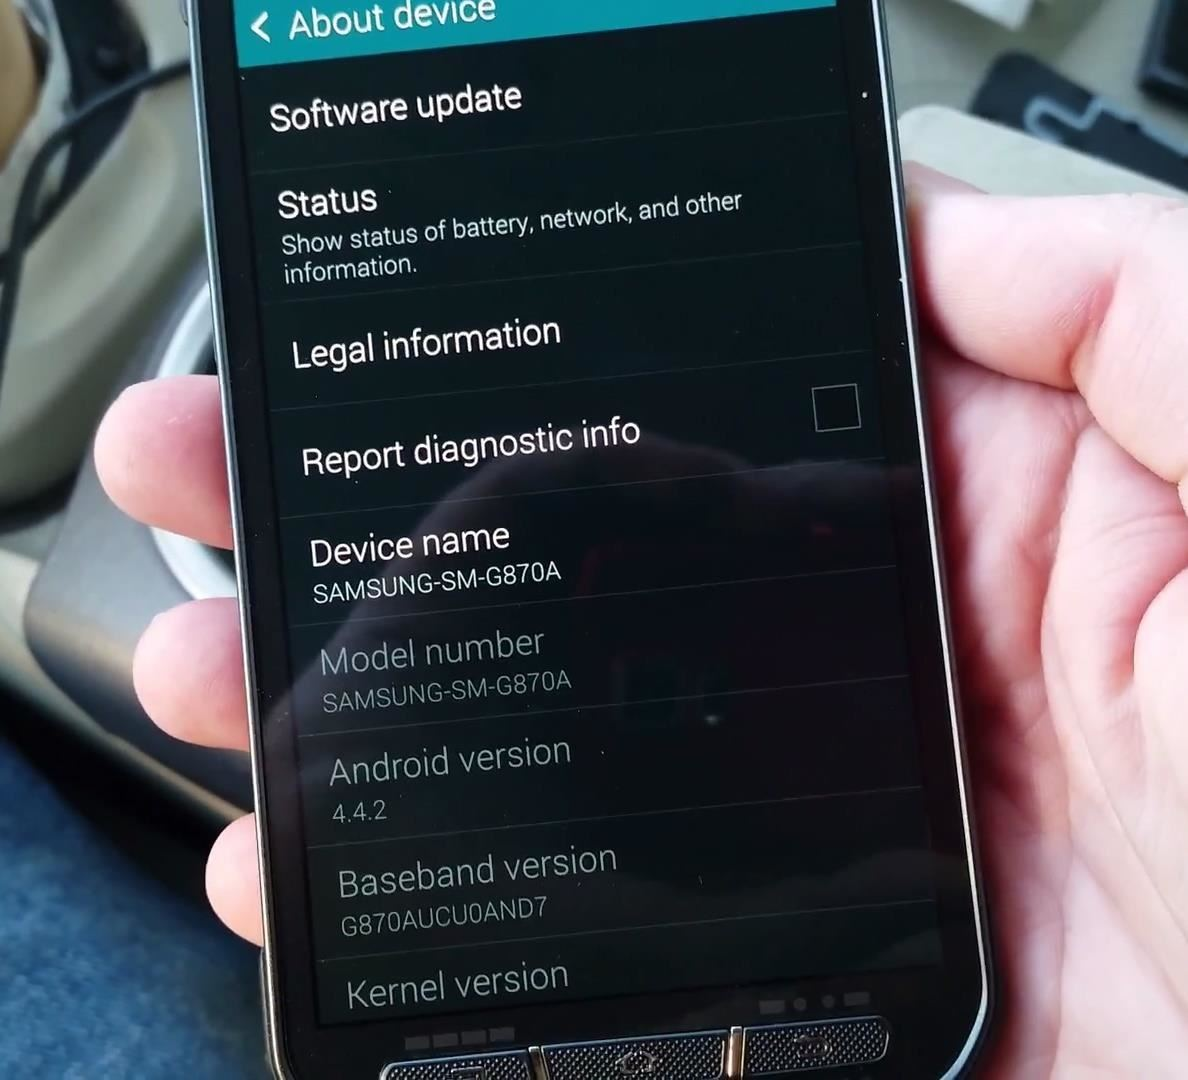 how to clear history on samsung s5 active